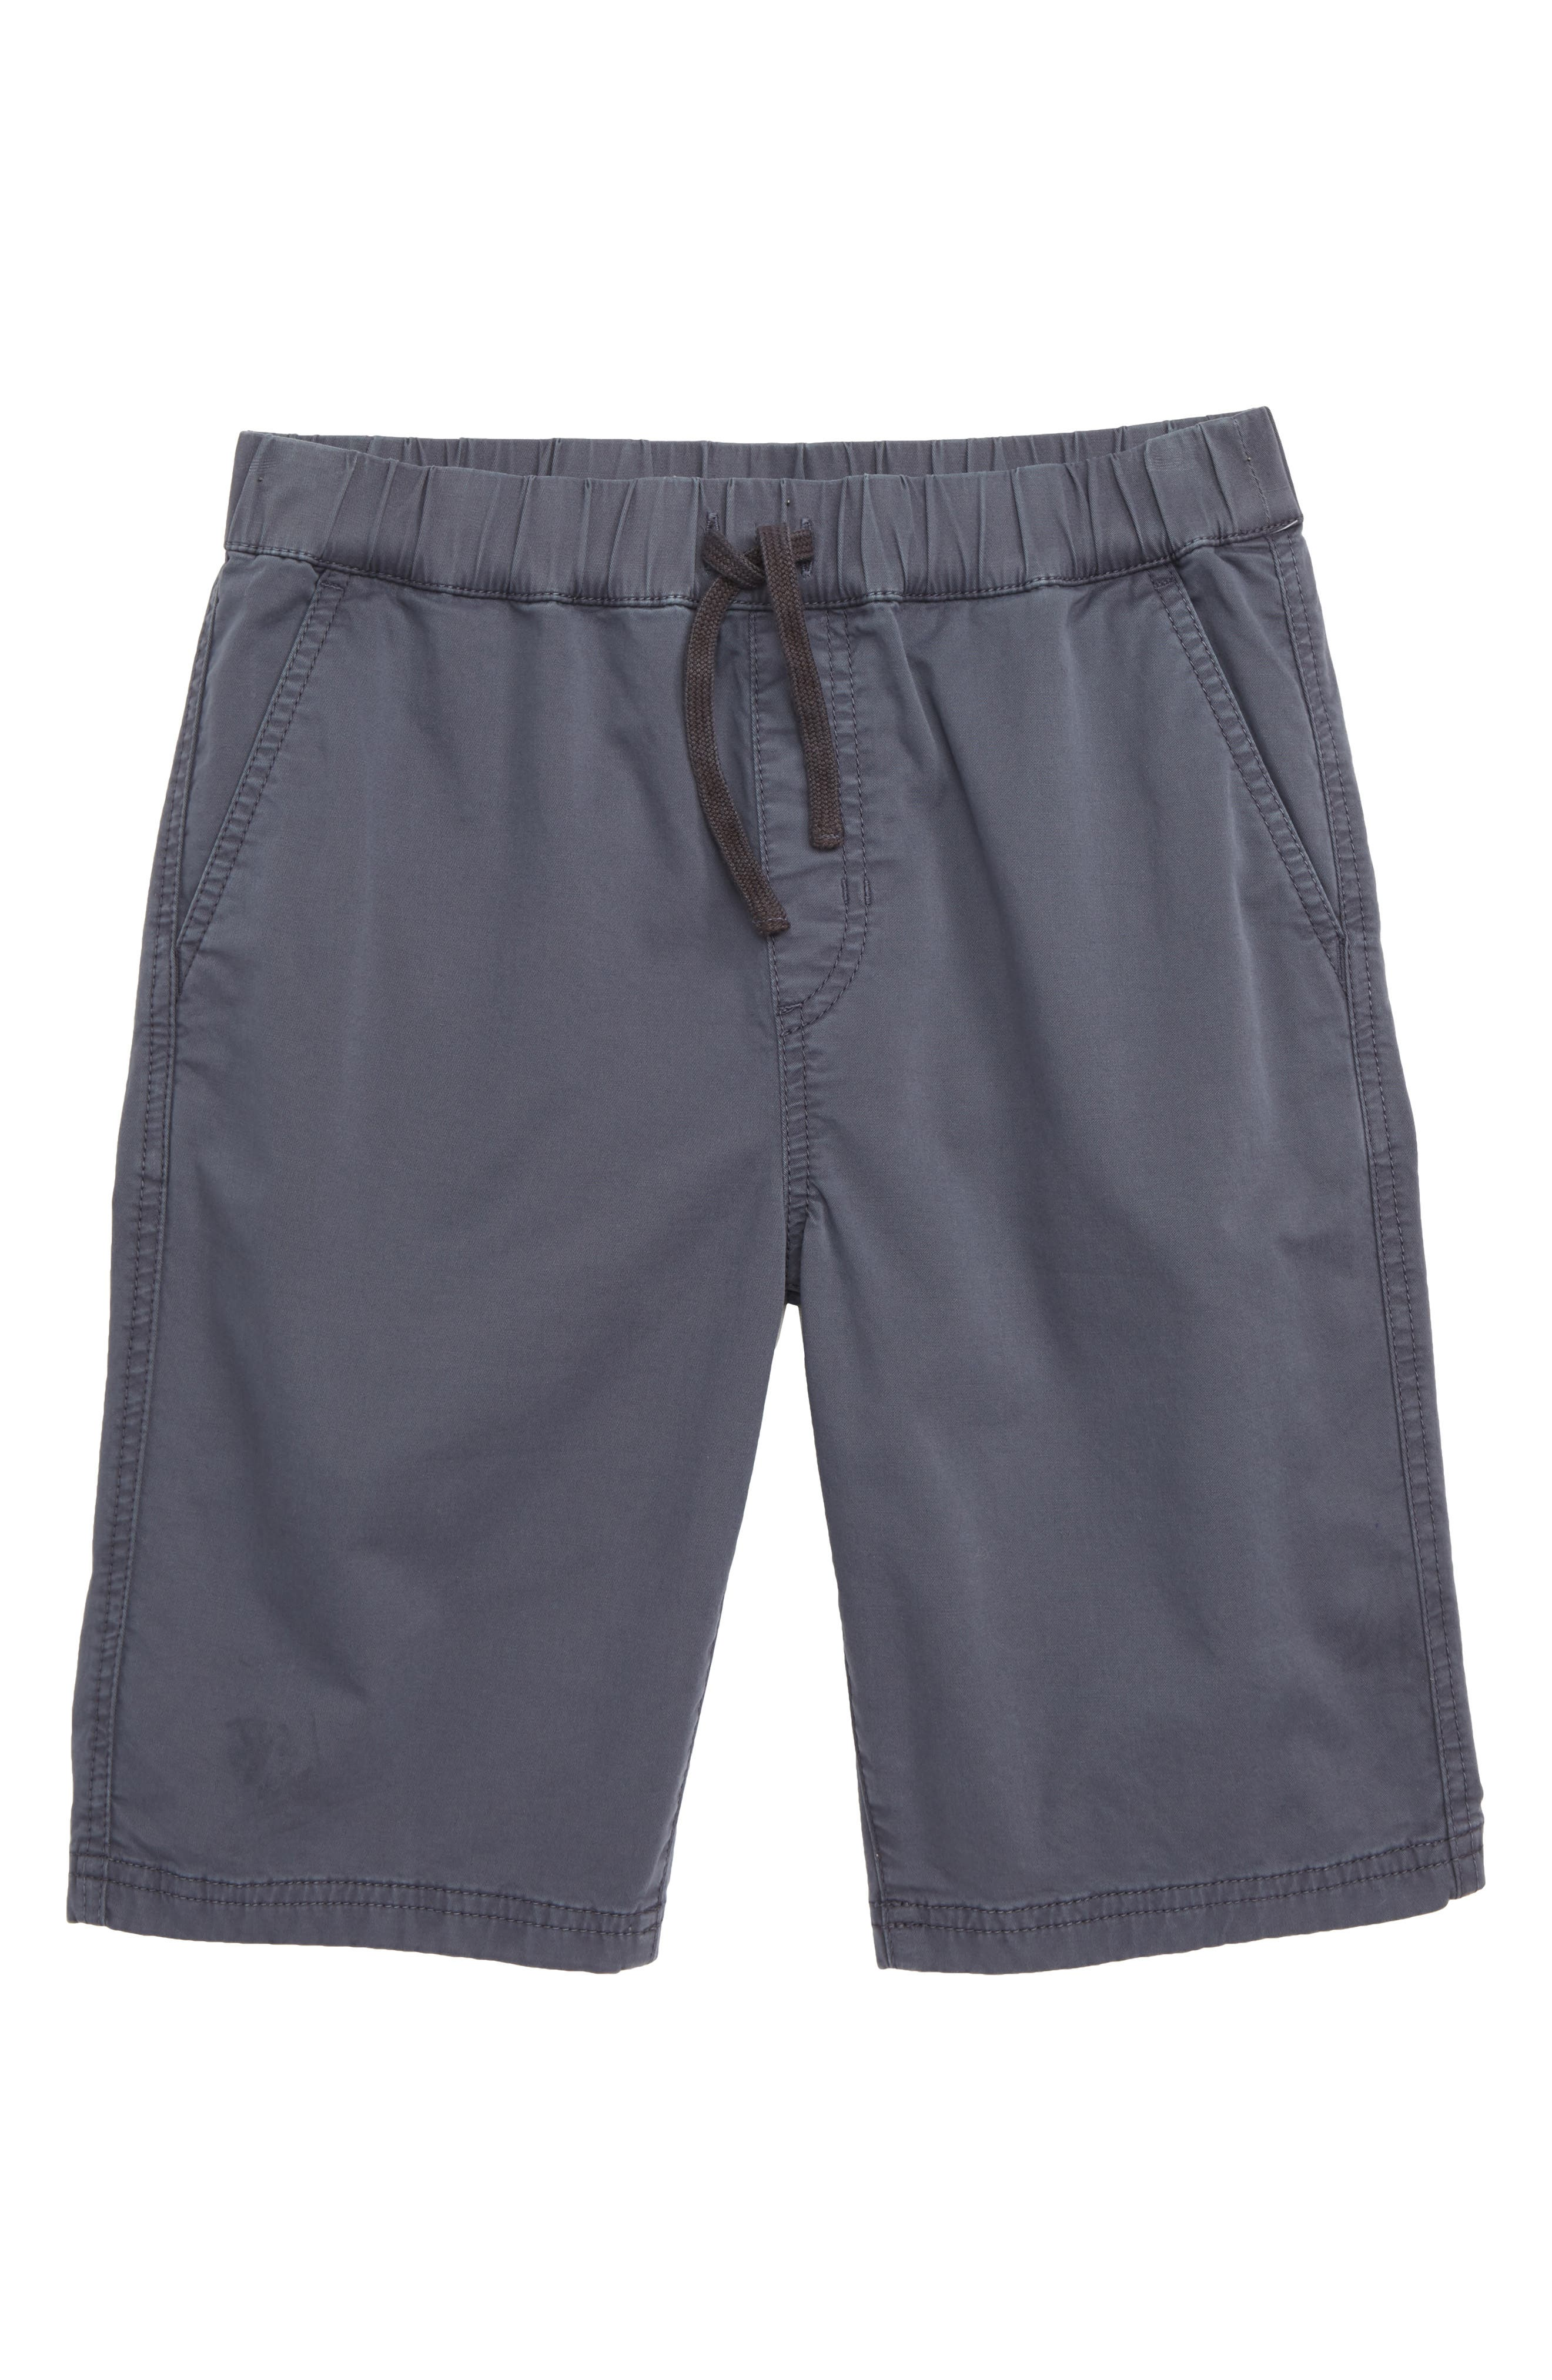 Grind Time Prime Time Shorts,                             Main thumbnail 1, color,                             GREY FLANNEL